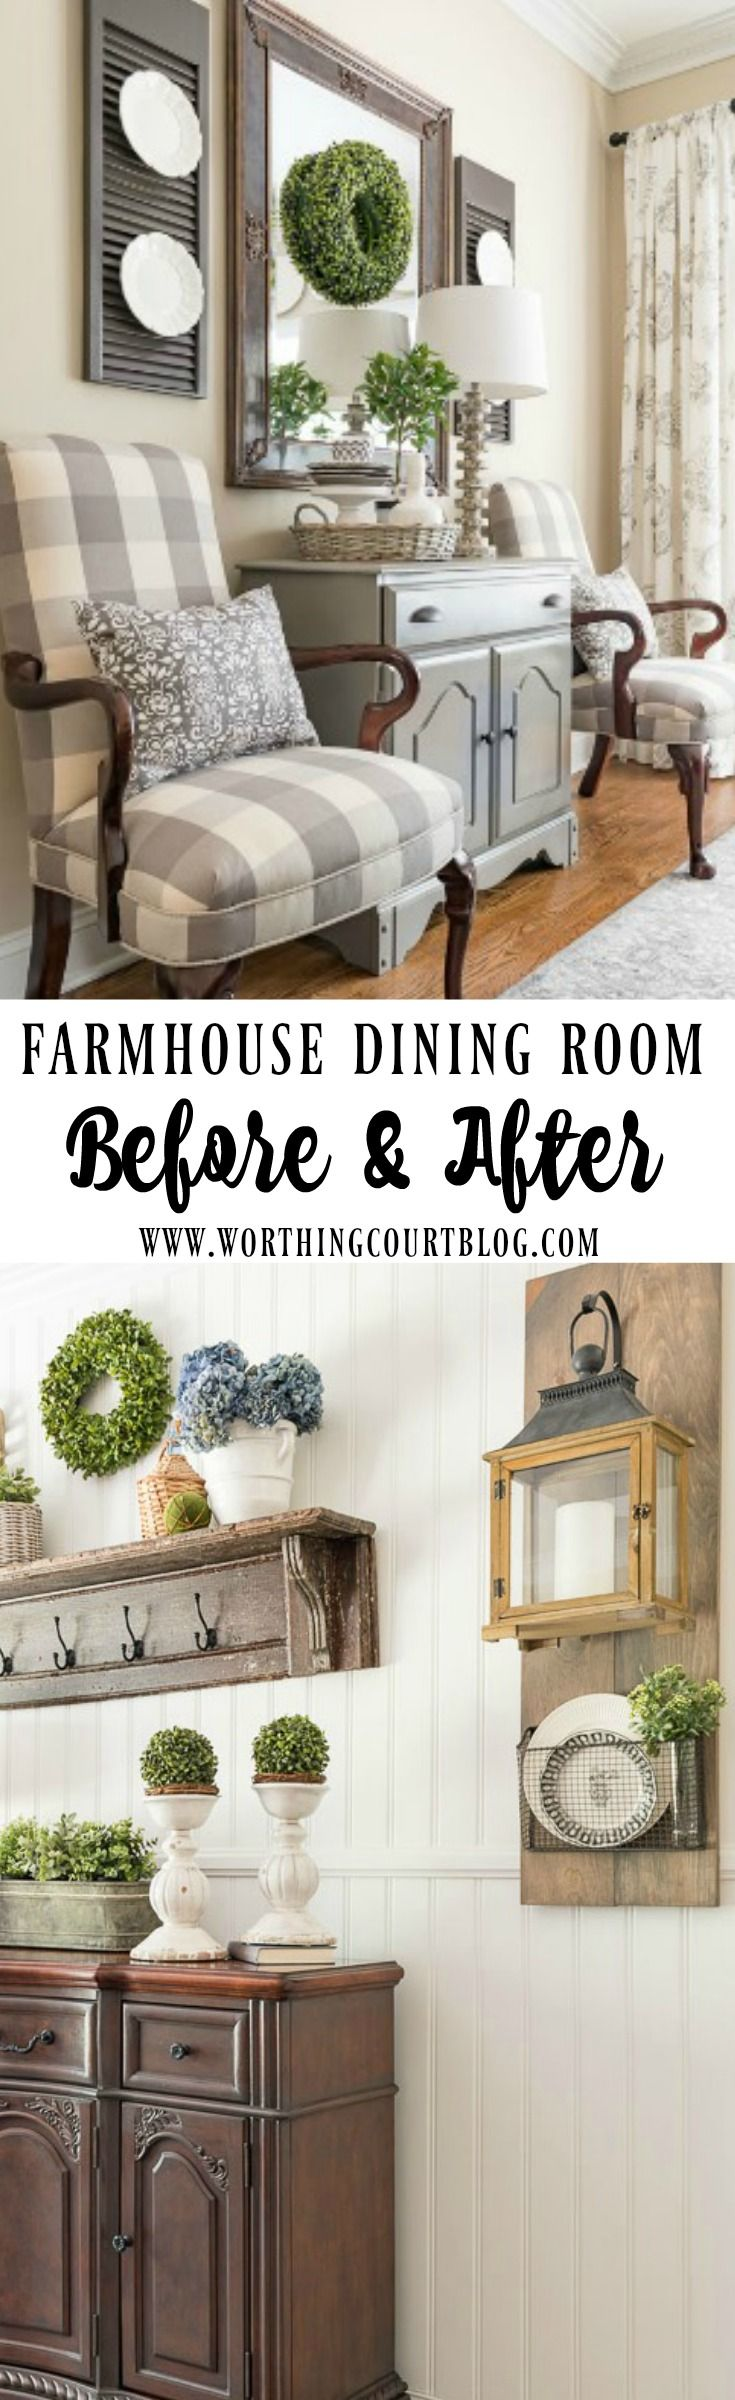 Farmhouse Dining Room Makeover Reveal - Before And After ...